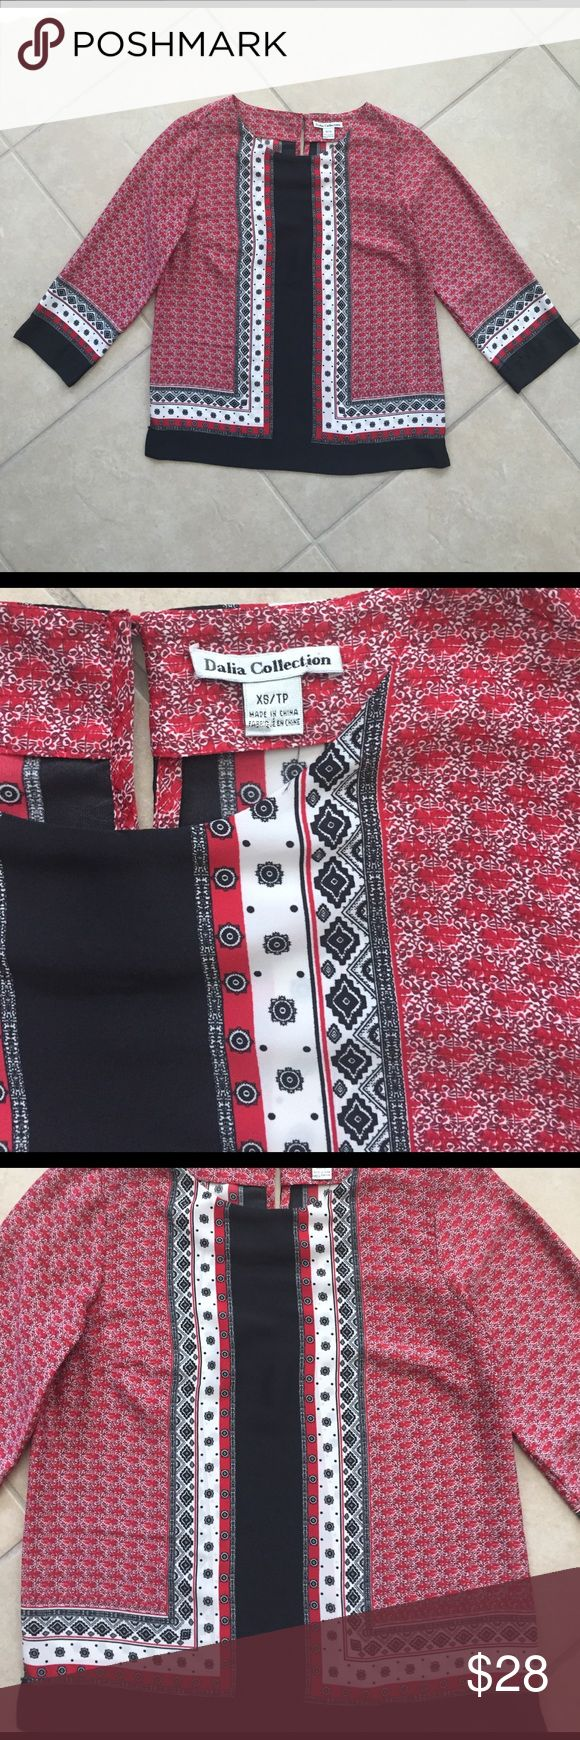 "Dalia Collection Top So pretty! Dalia top in red and black print back button closure, bracelet length sleeve. 18"" armpit to armpit, length 24 Dalia Collection  Tops Blouses"